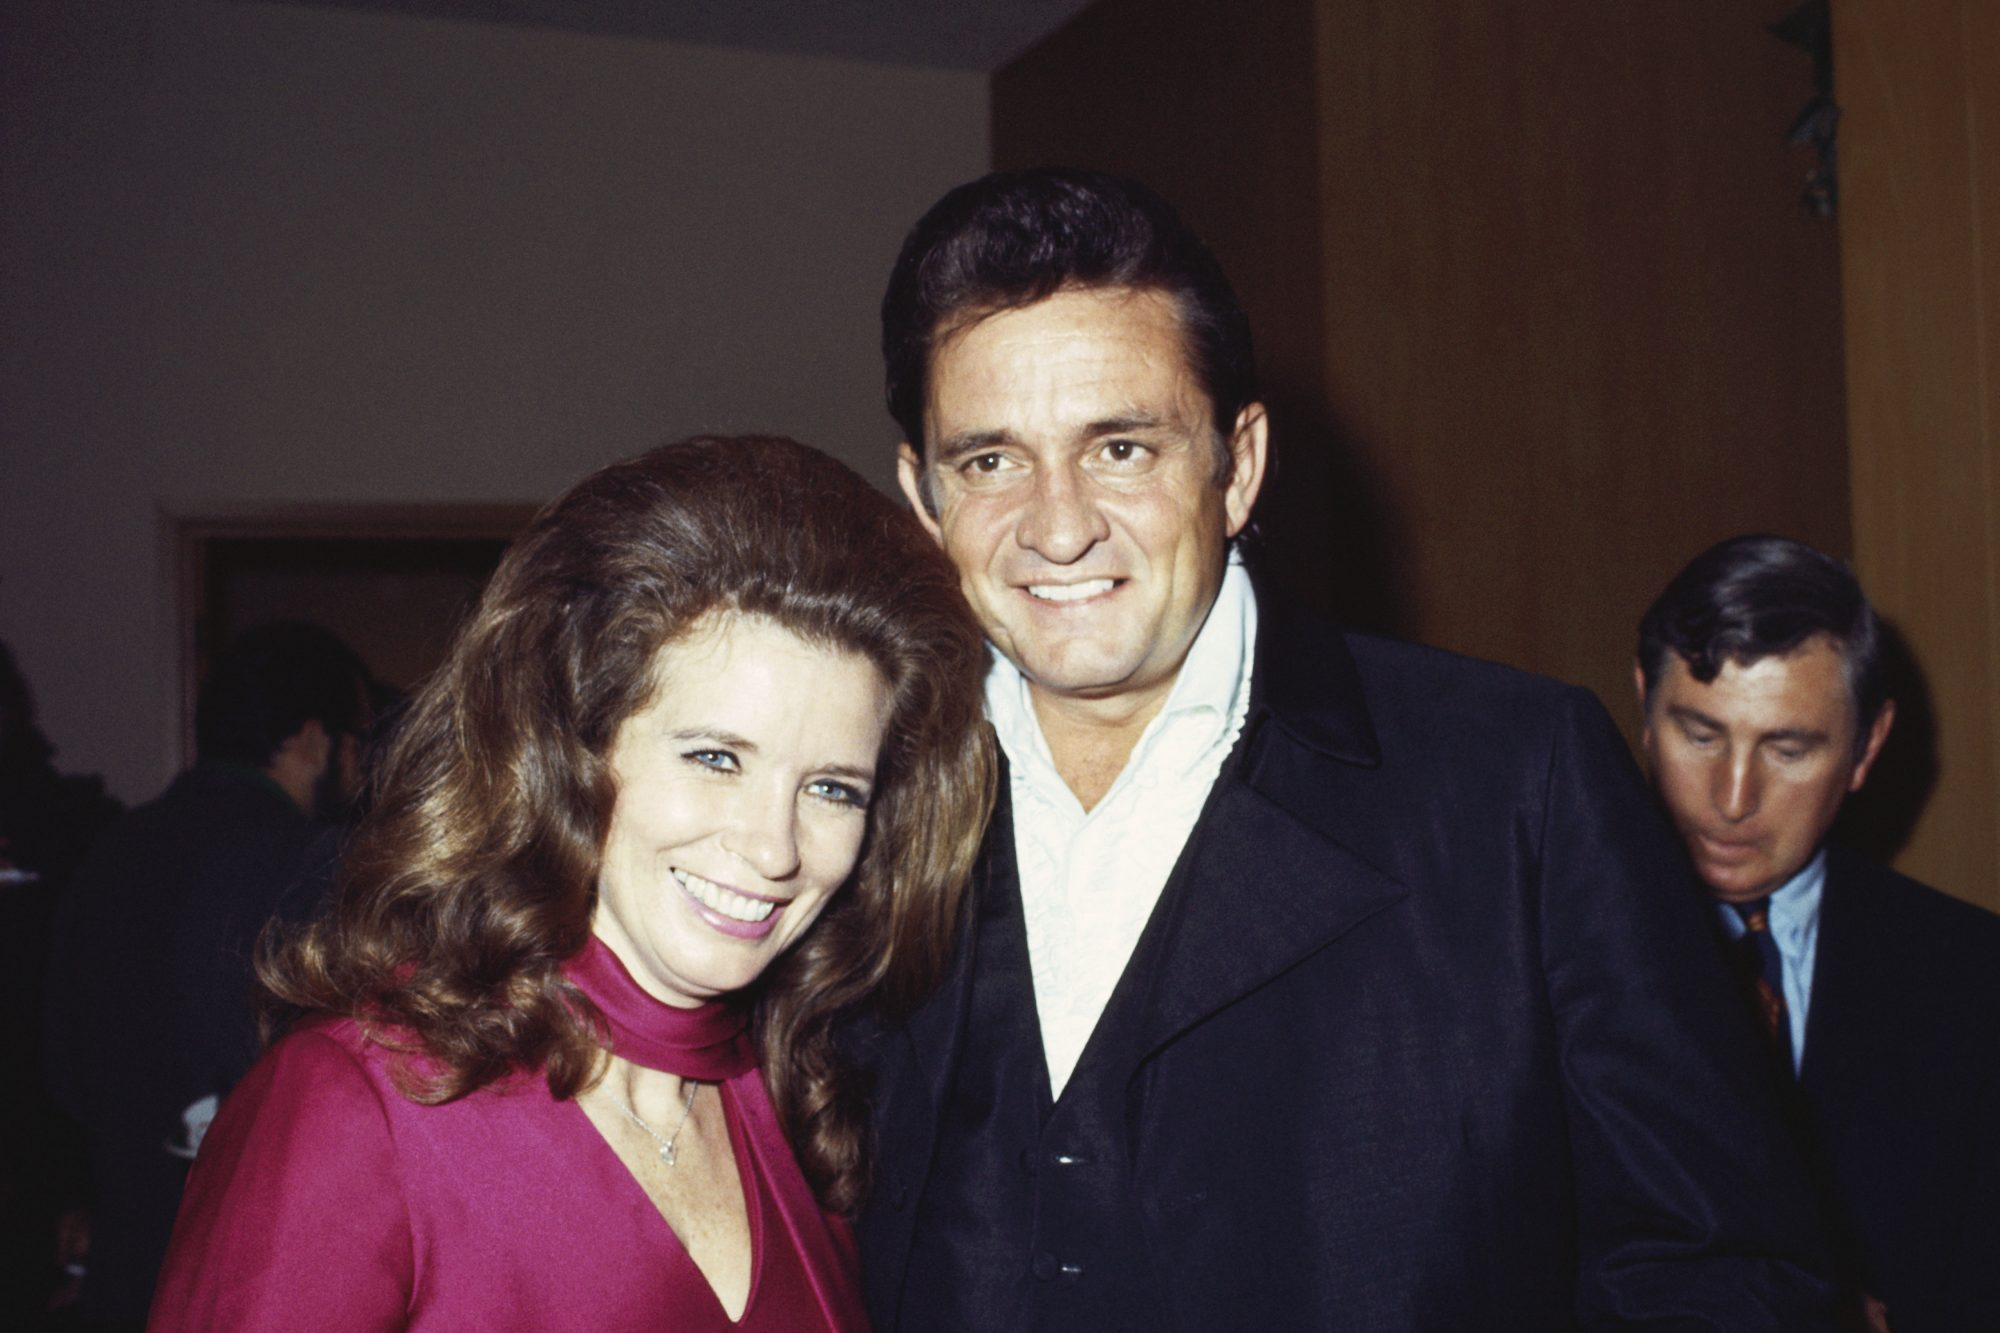 Johnny Cash's Favorite Restaurant, According to His Son